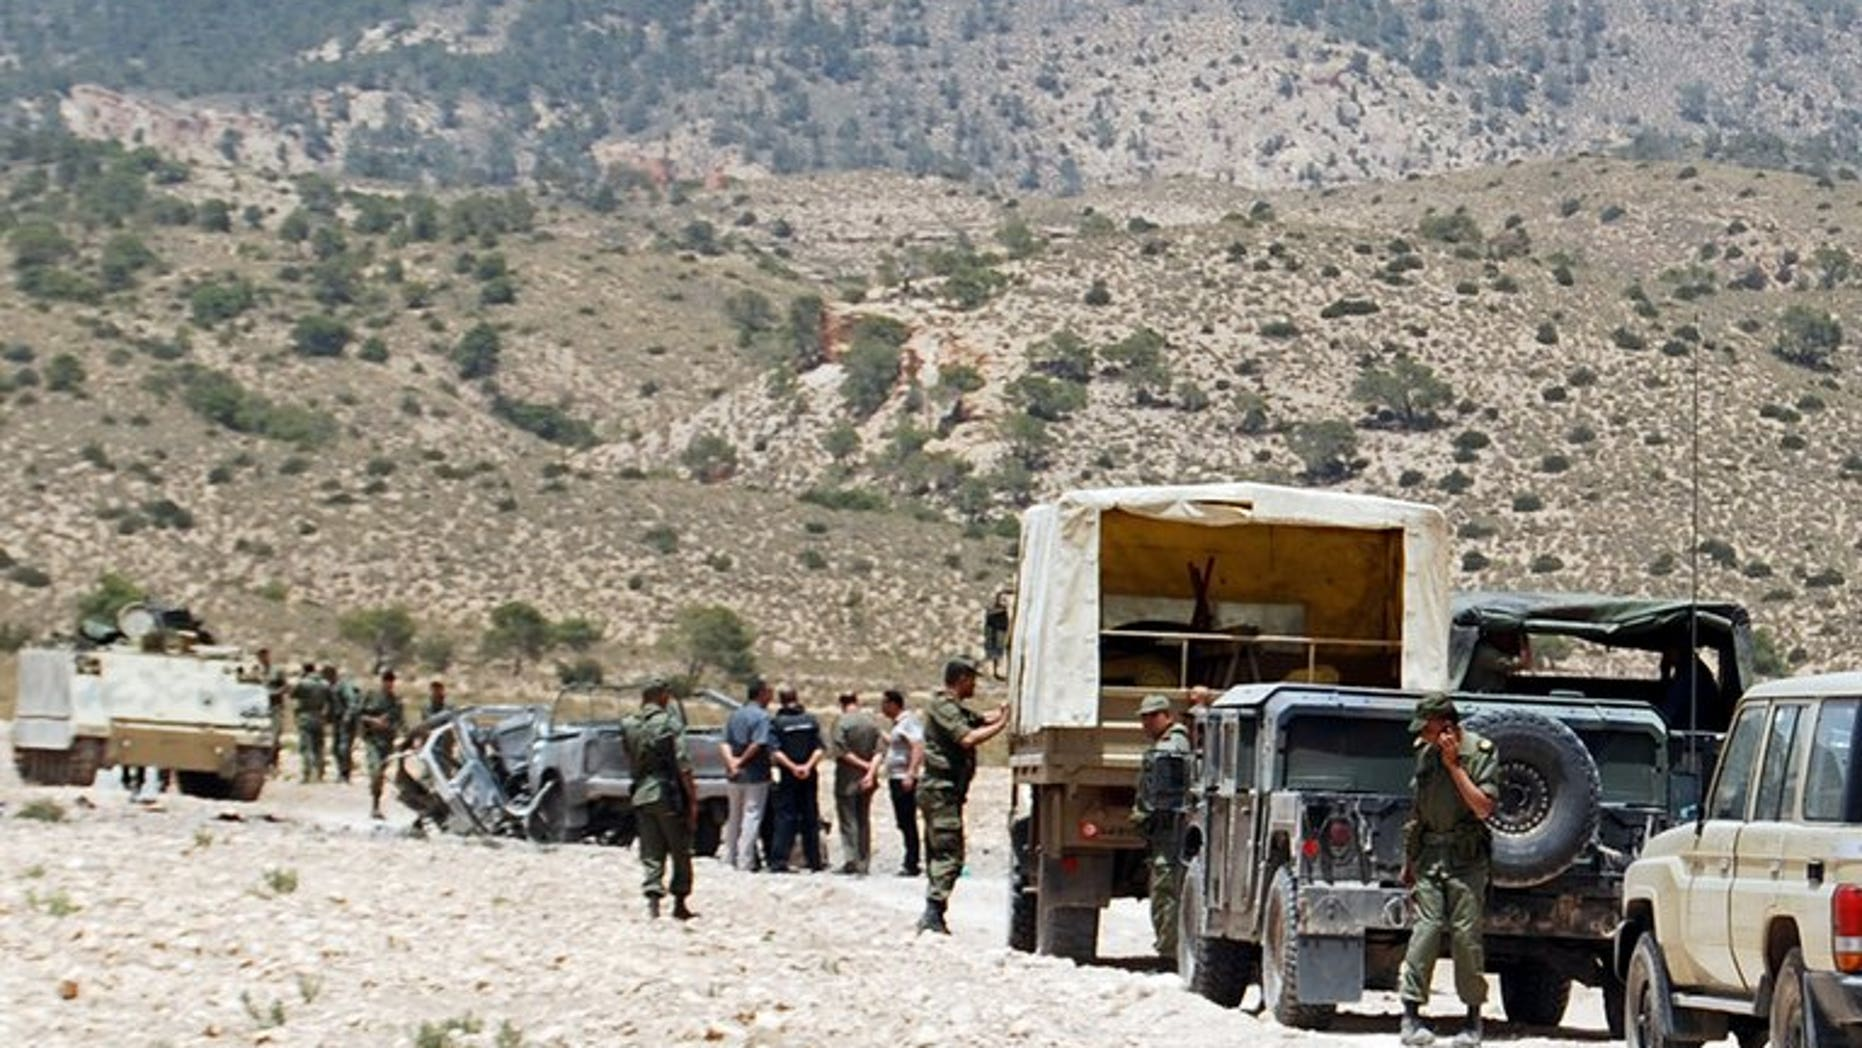 The Tunisian army stands guard in the mountainous border region near Algeria on June 6, 2013. Tunisia's army on Monday bombarded suspected jihadist positions in a rugged mountain range near the Algerian border, as it kept up operations against Islamists following a deadly ambush on troops.